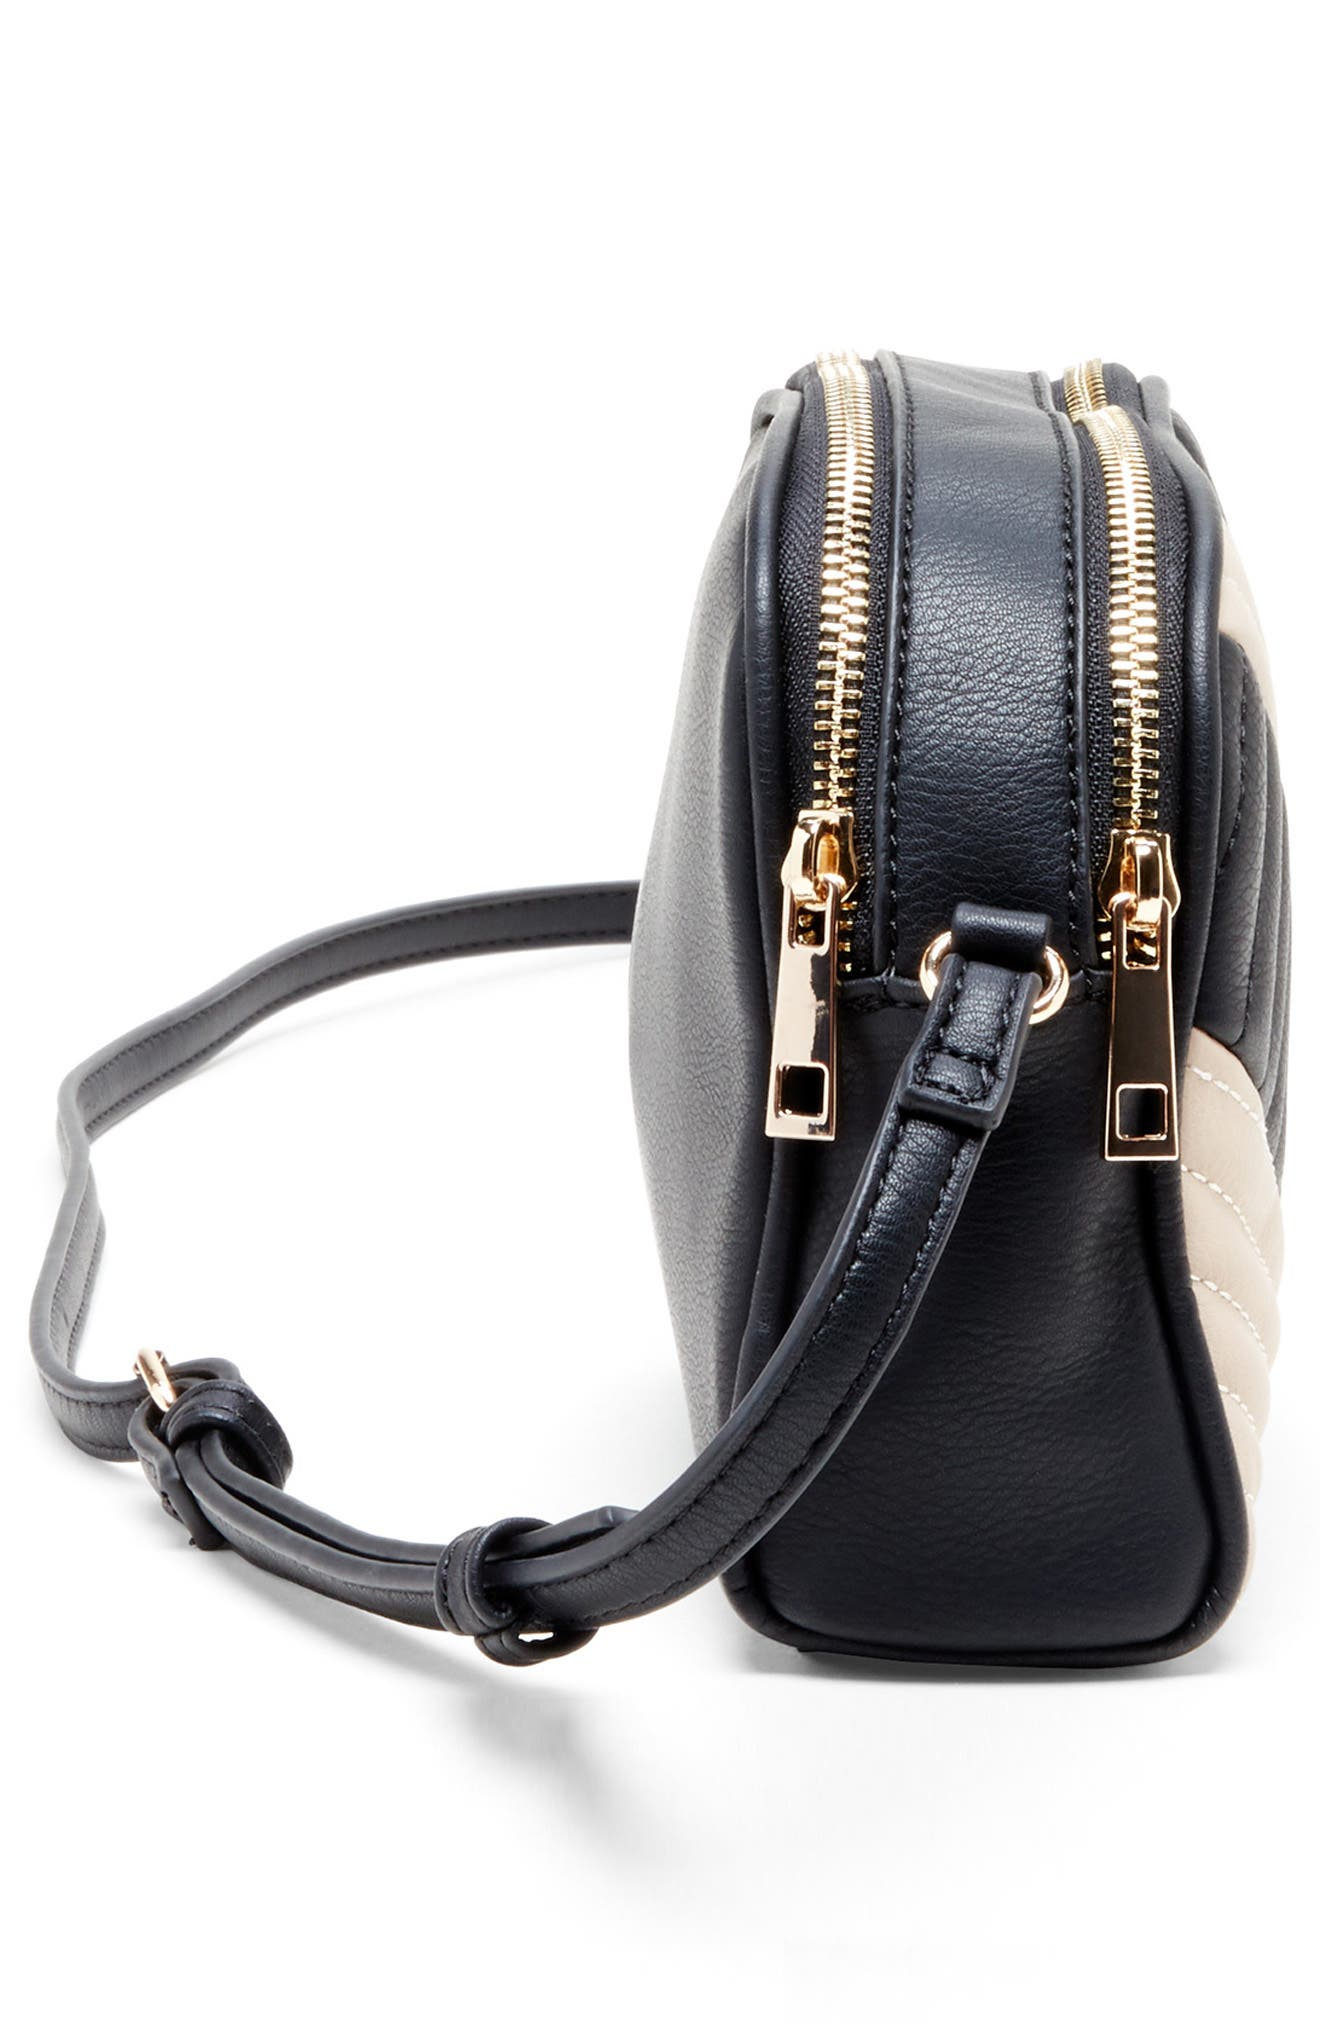 SOLE SOCIETY, Linza Faux Leather Crossbody Bag, Alternate thumbnail 4, color, BLACK/ CREAM